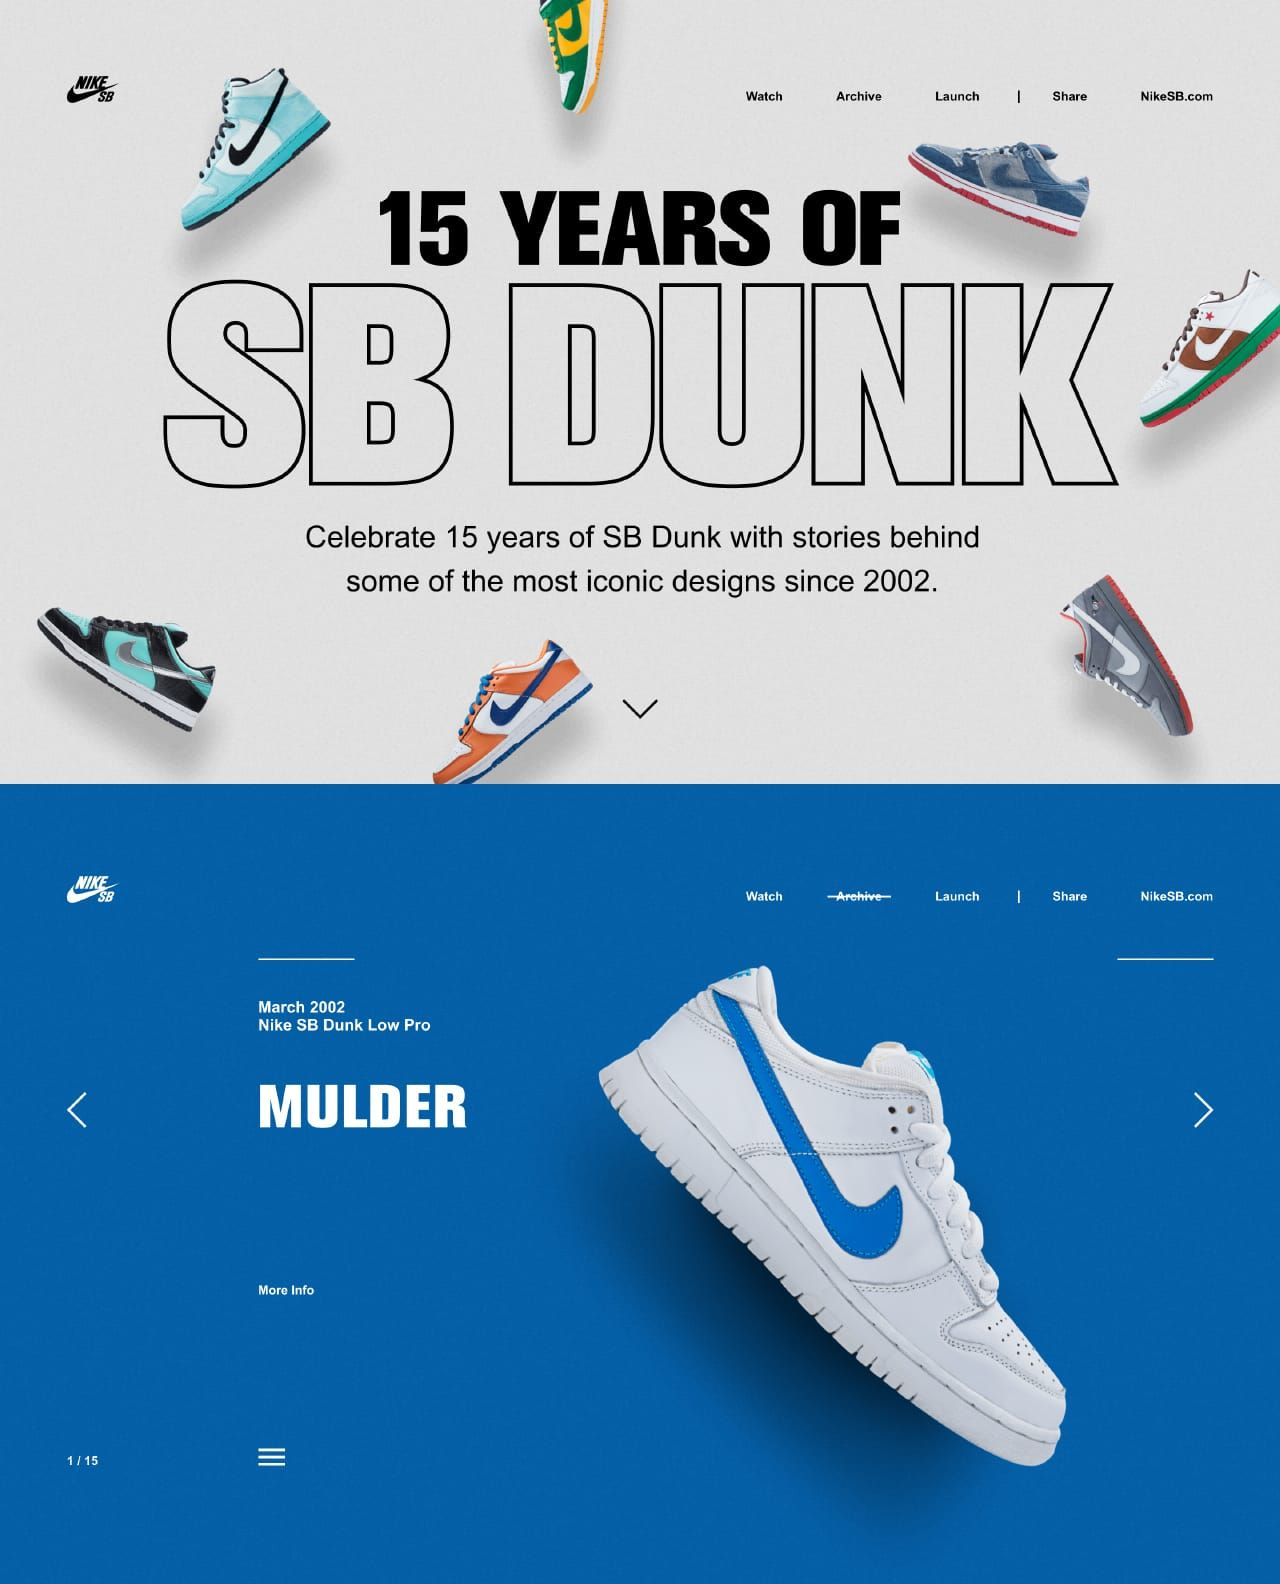 Brilliant One Pager by Nike celebrating 15 Years of their SB Dunks. The  campaign Landing 37ba04d89fdd